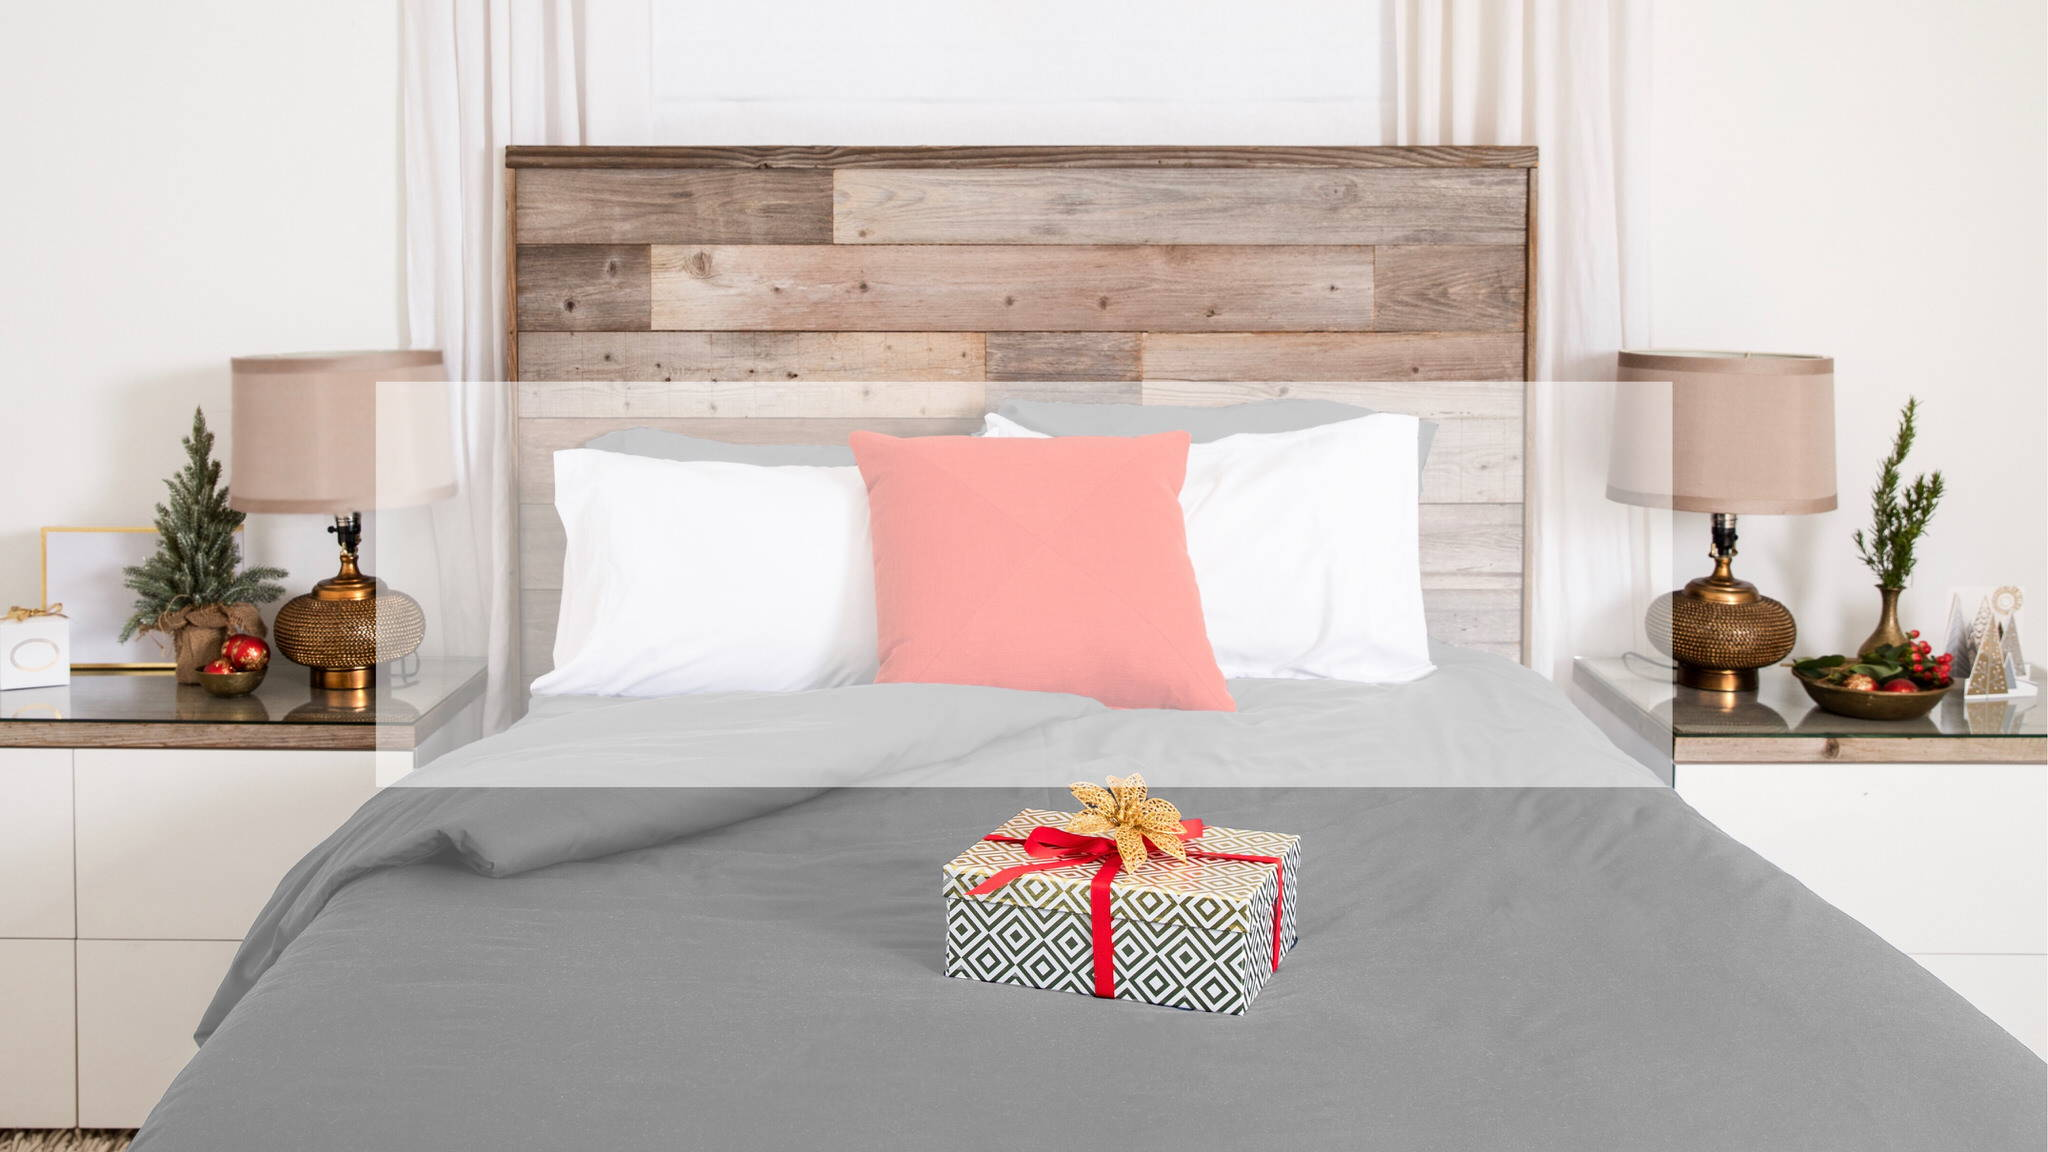 made in usa bed sheets and towels